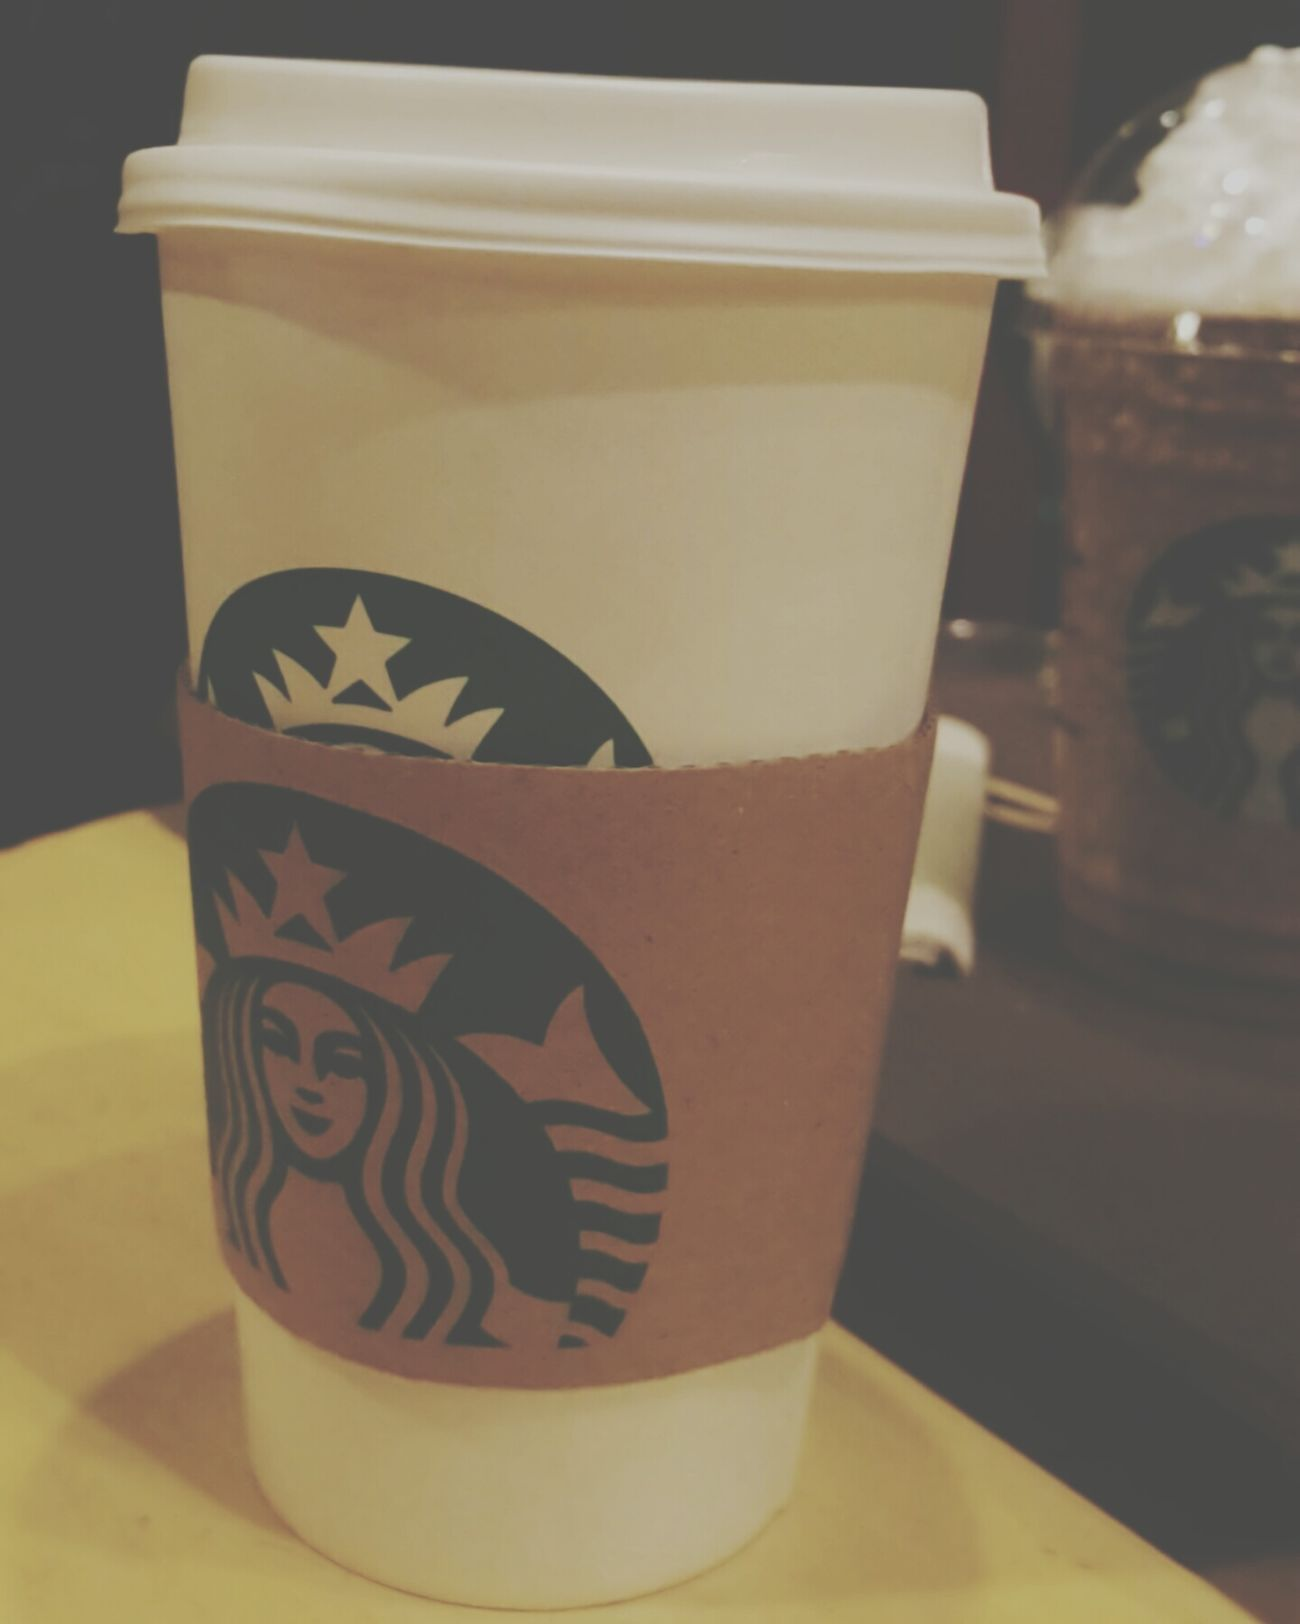 Starbucks Kuwait Alkout  Coffee Nothingtosay Idk I Was Bored Idkwhy Hello World Friends My World